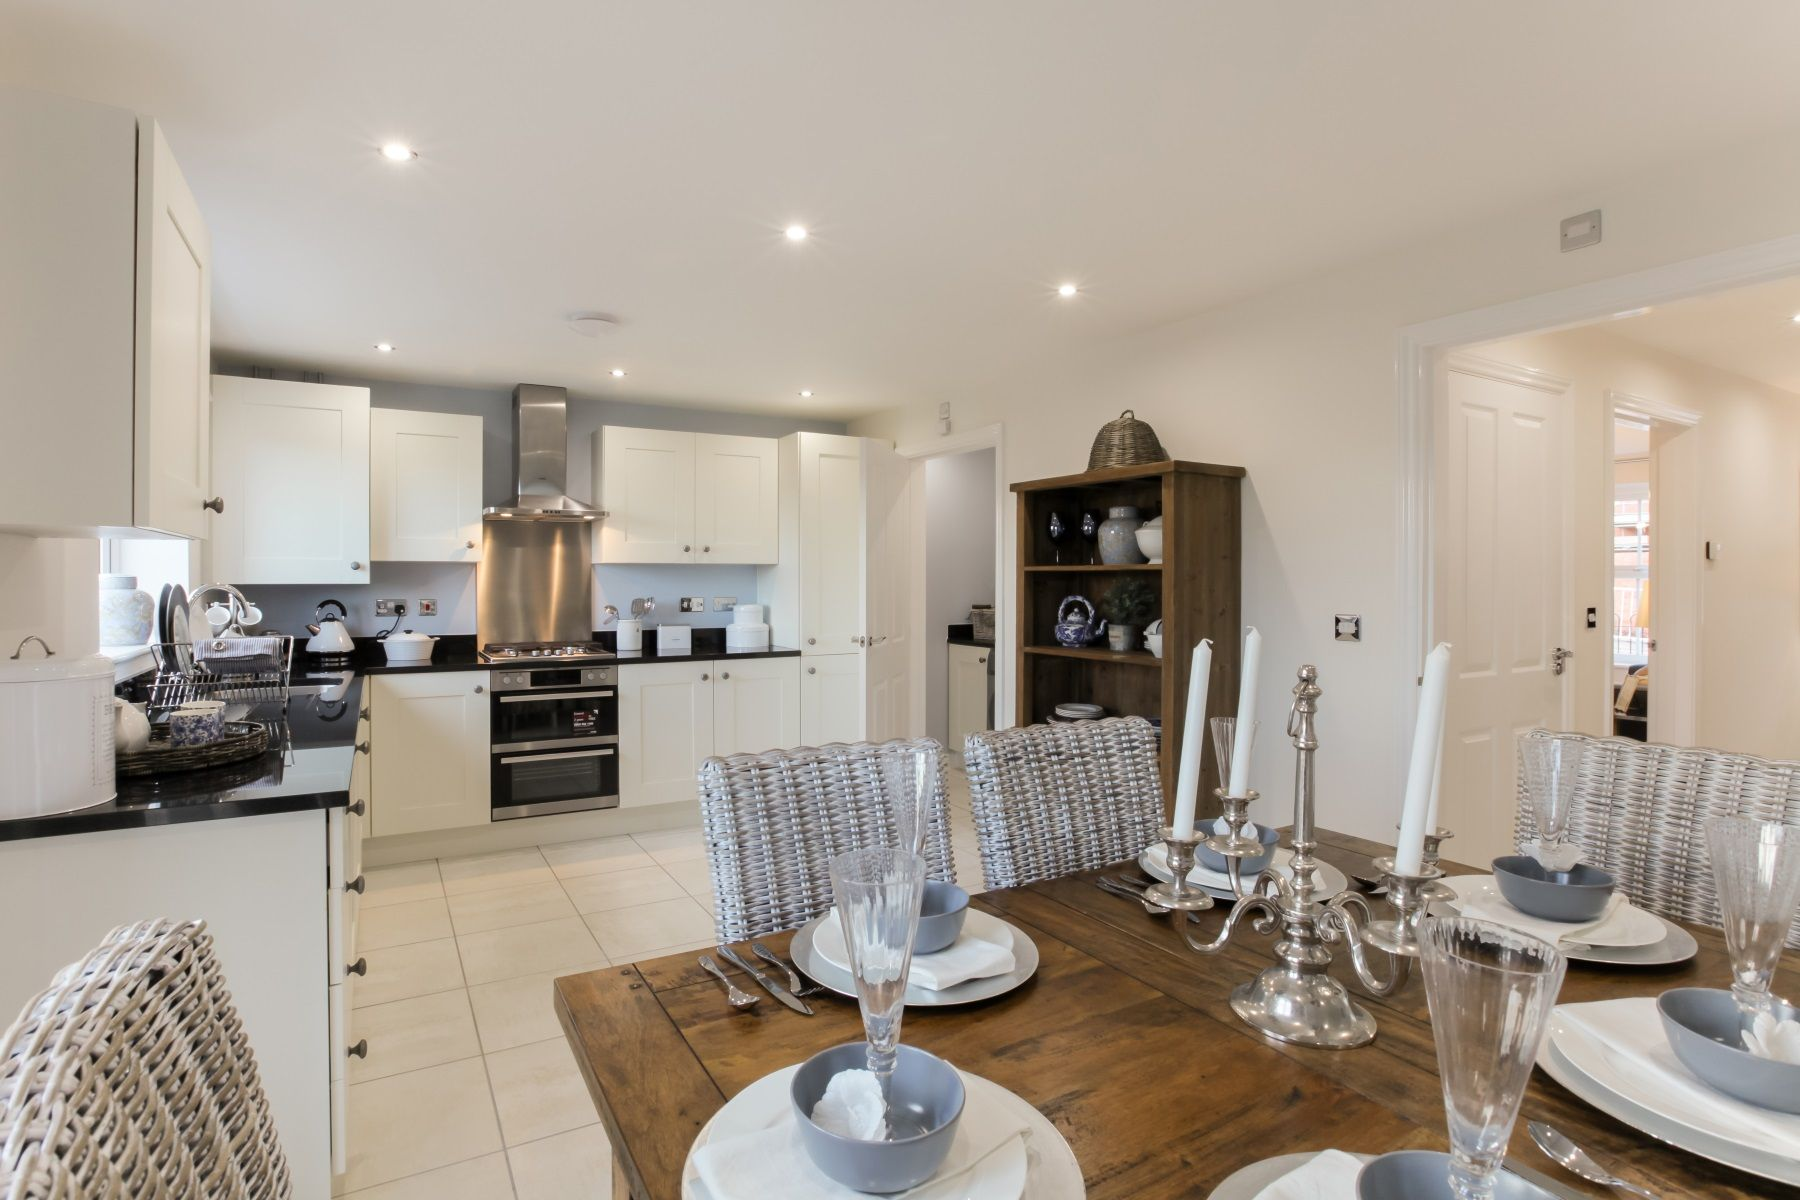 TW Exeter - Sherford - The Redwood example kitchen 2